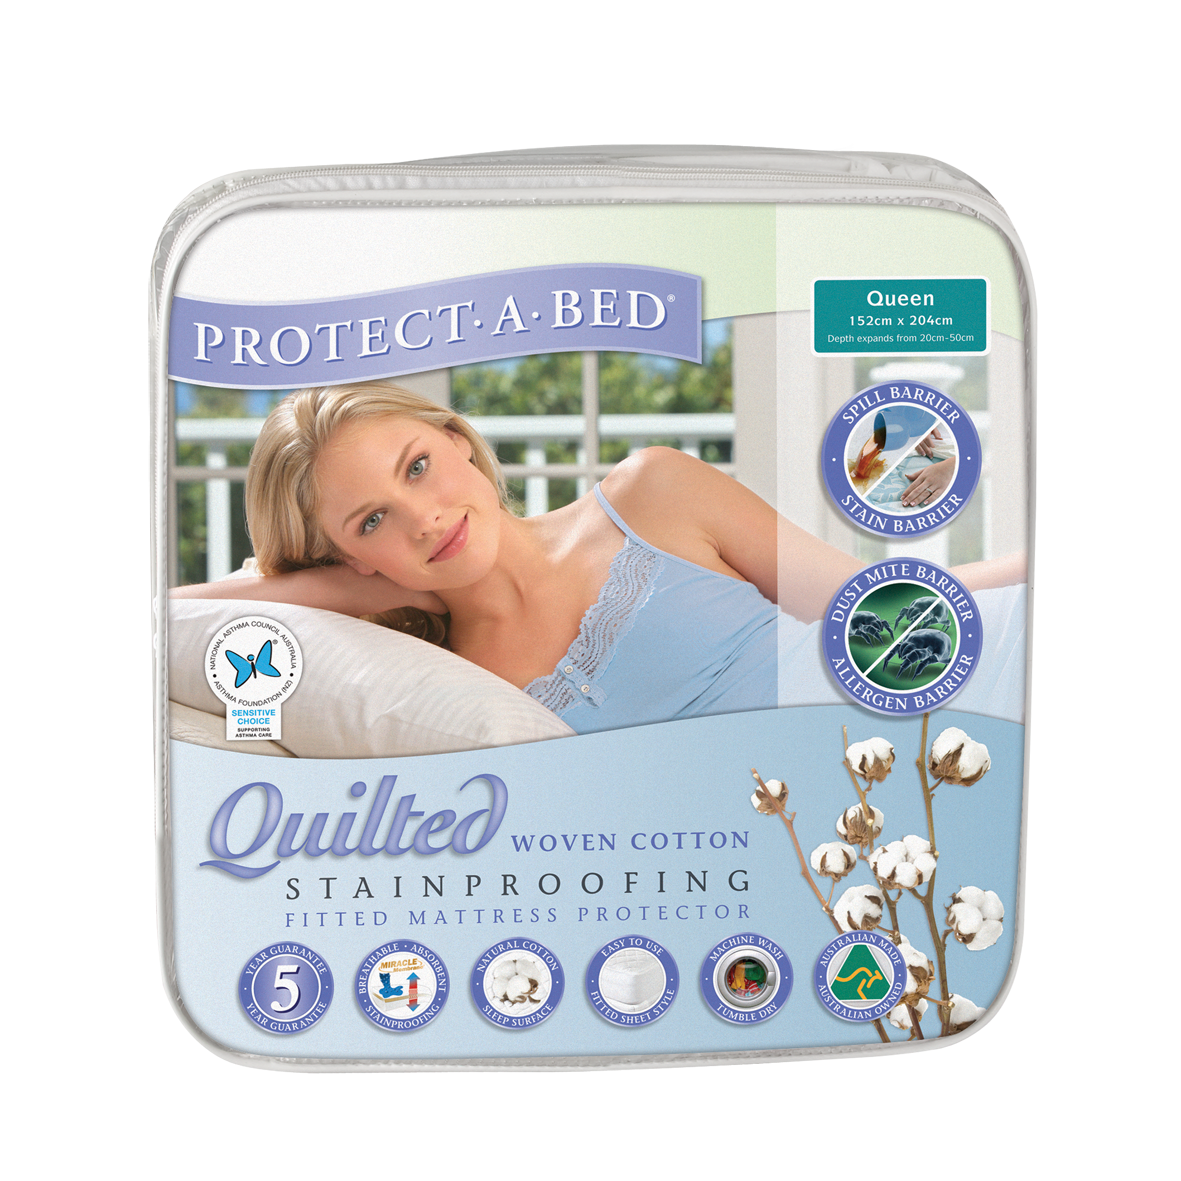 Cotton Quilted Mattress Protector & Pillow Protector Range by Protect A Bed